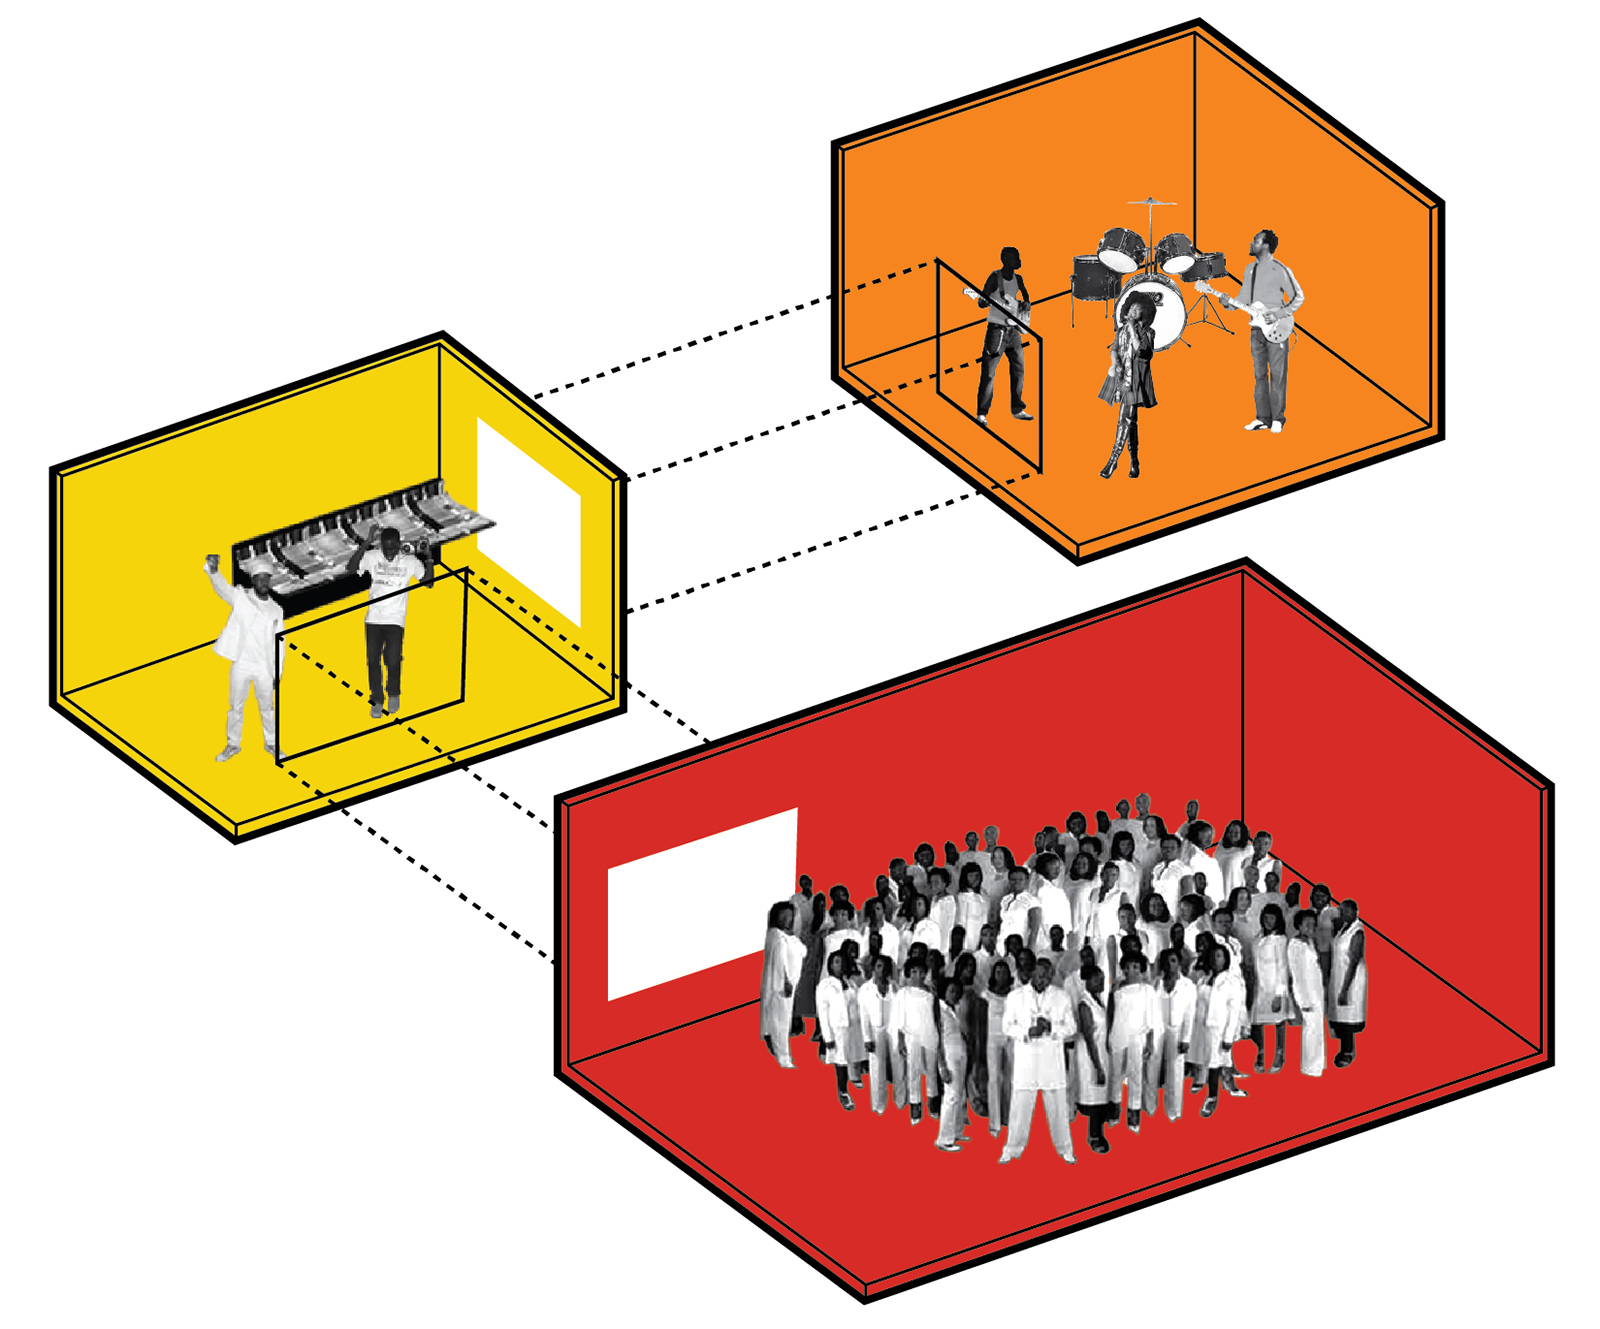 Diagram showing the various required programs in the YELE studios: a small and large recording studio and a recording booth